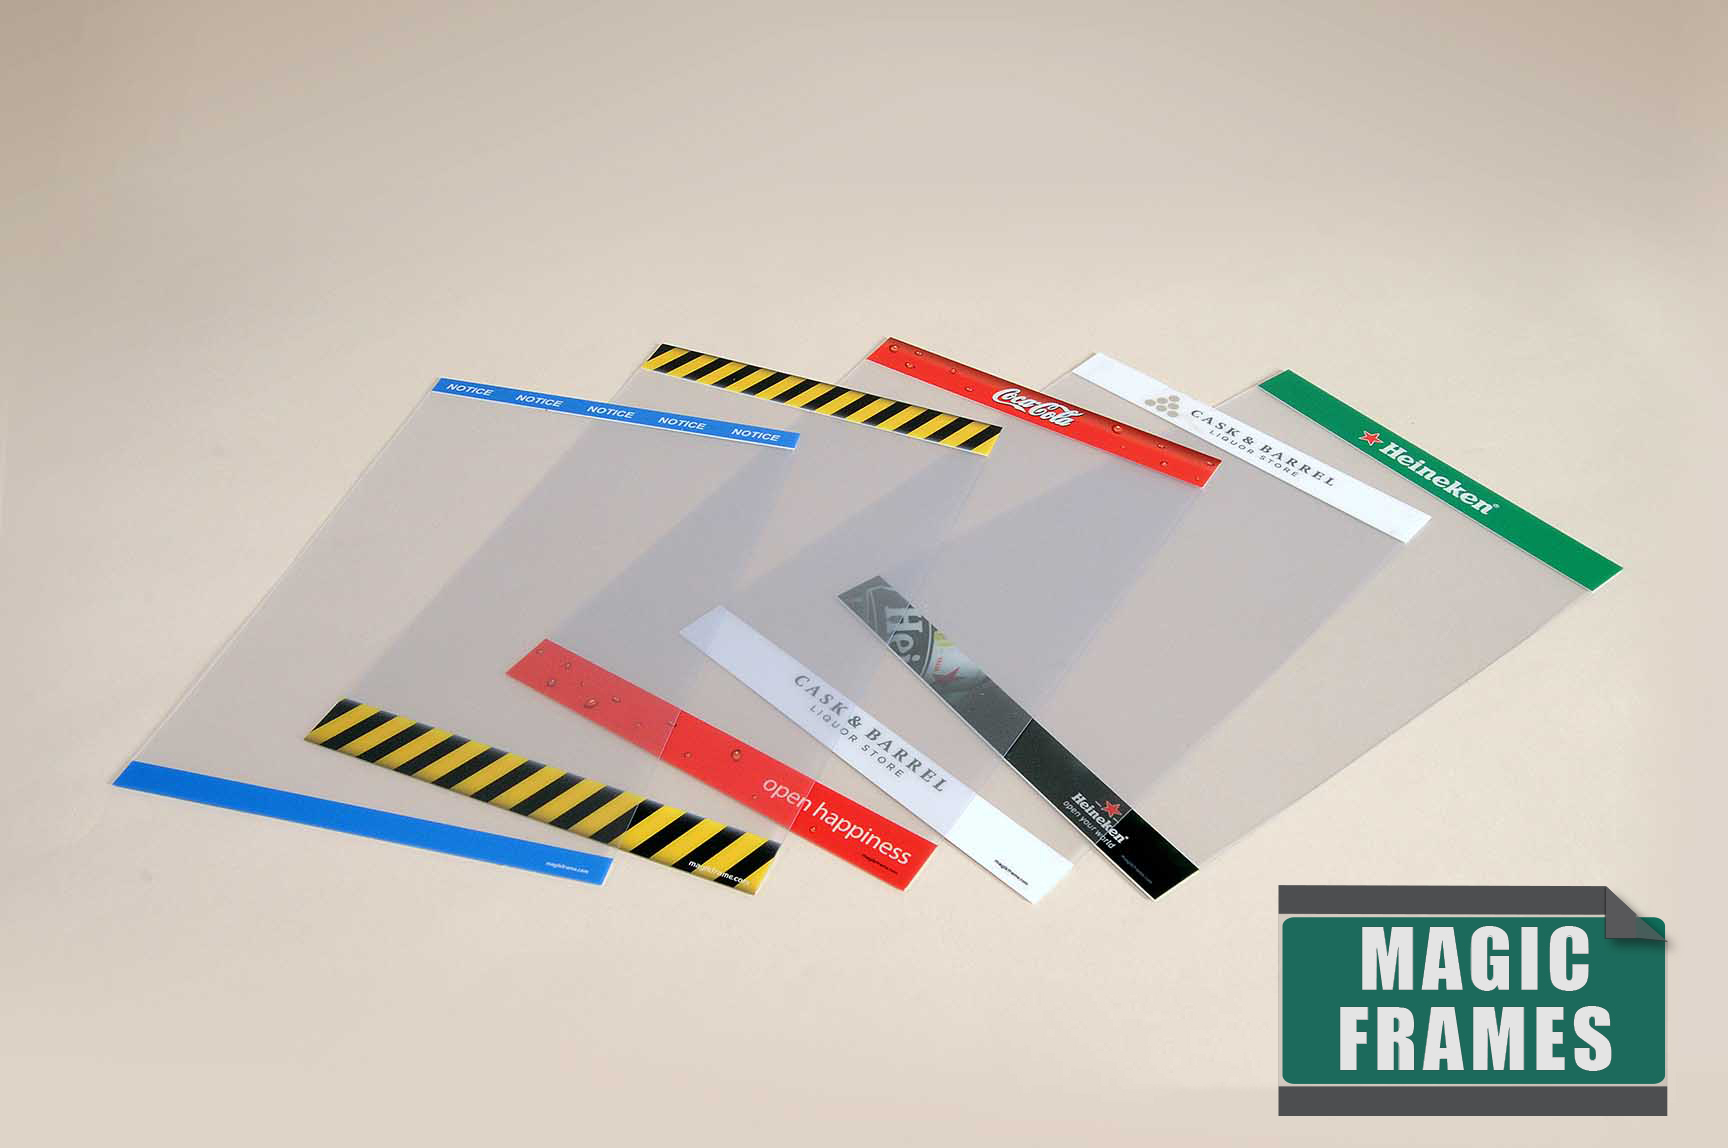 Customize Your Reusable Magic Frames - The Global Display Solution™